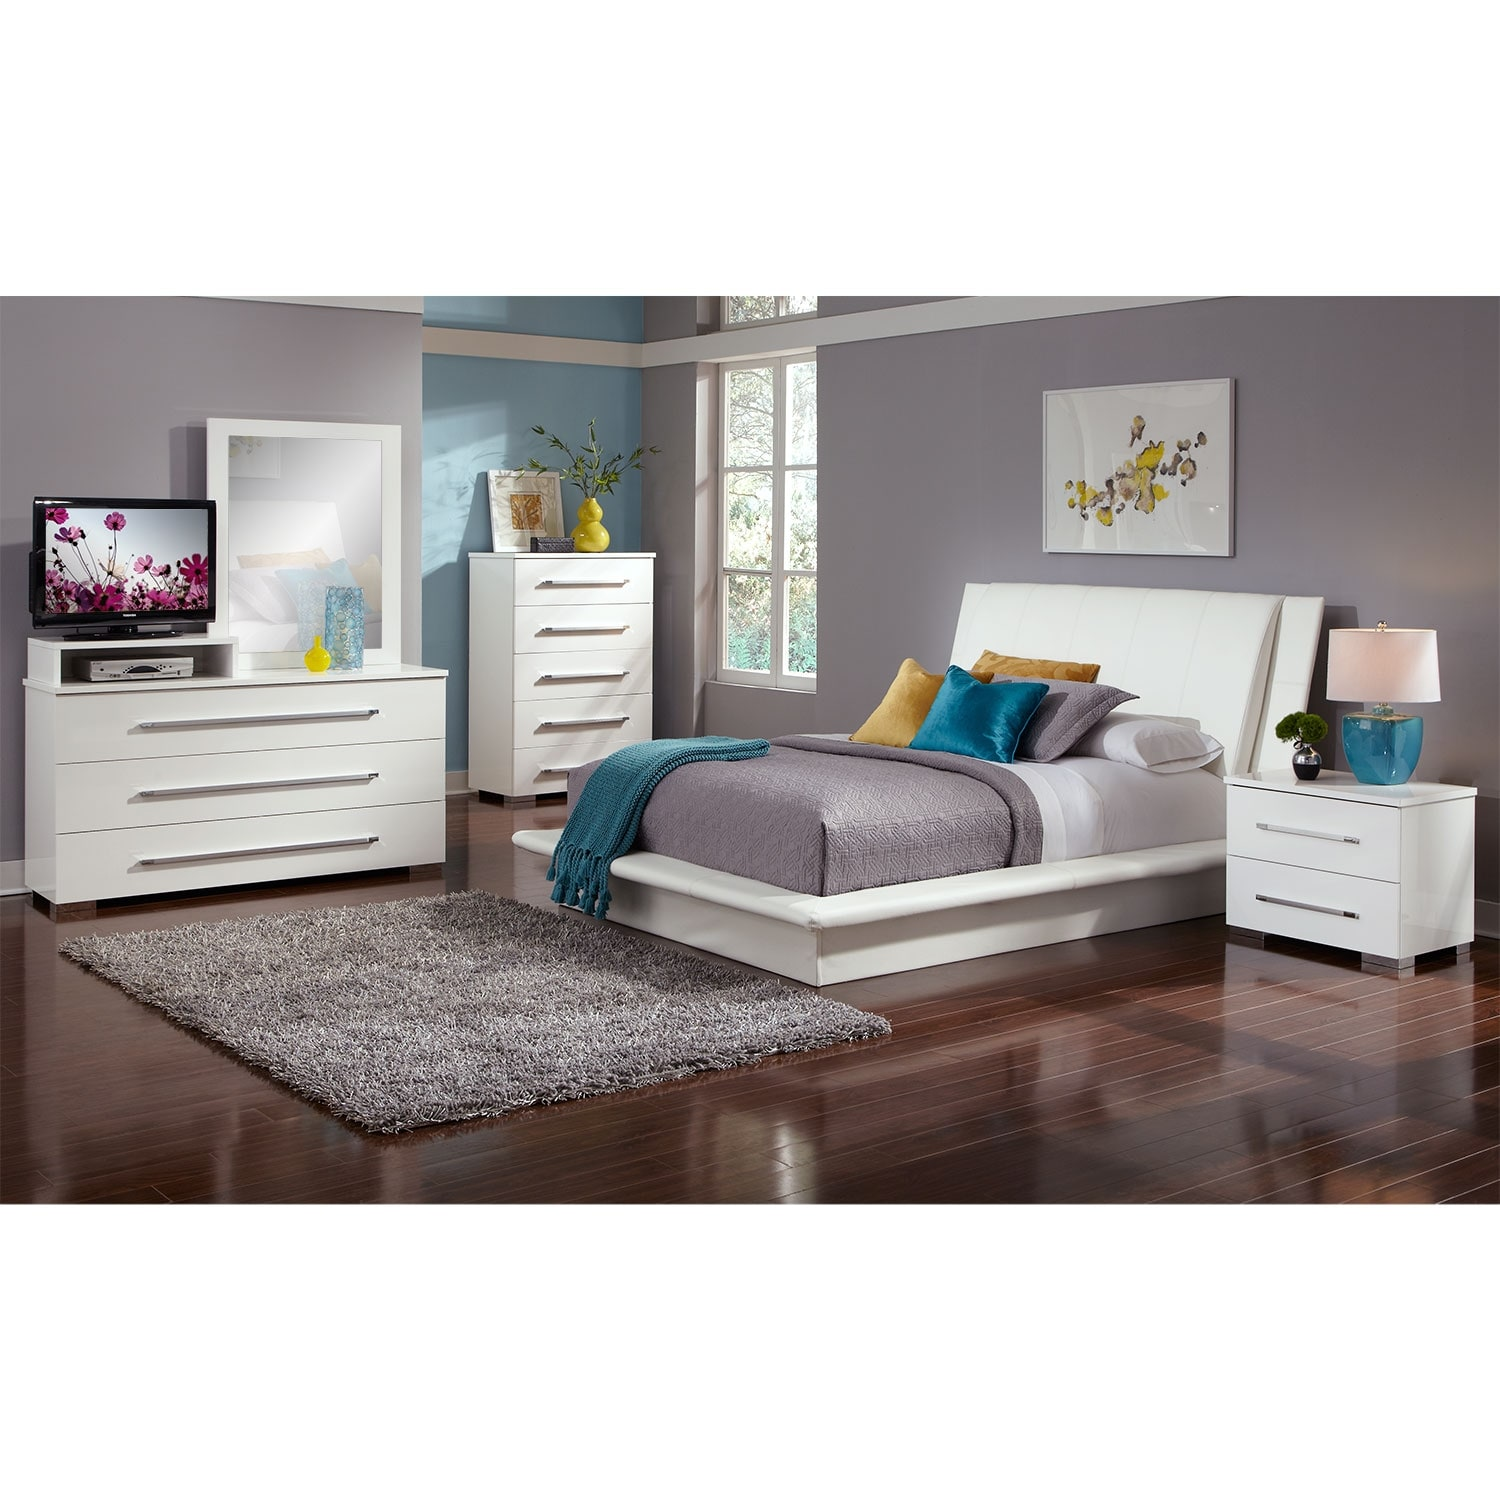 Dimora Queen Upholstered Bed - White | Value City Furniture and ...